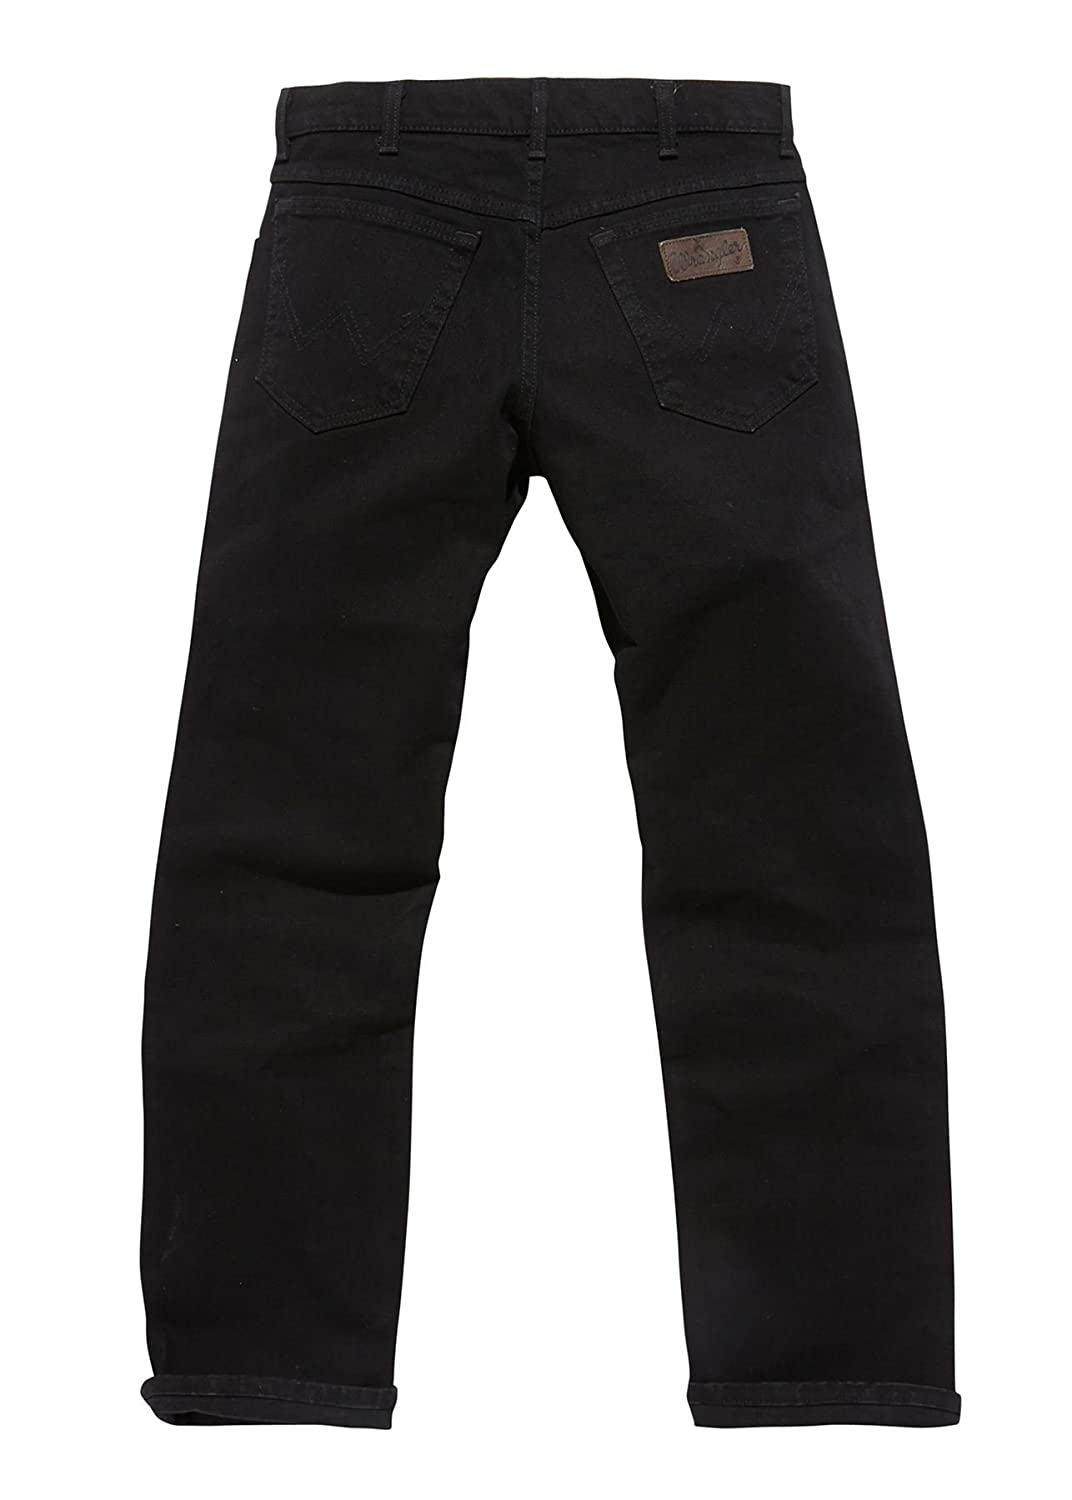 check out efa91 e91ad Wrangler TEXAS STRETCH BLACK OVER DYE JEANS IN WAIST 30 TO ...